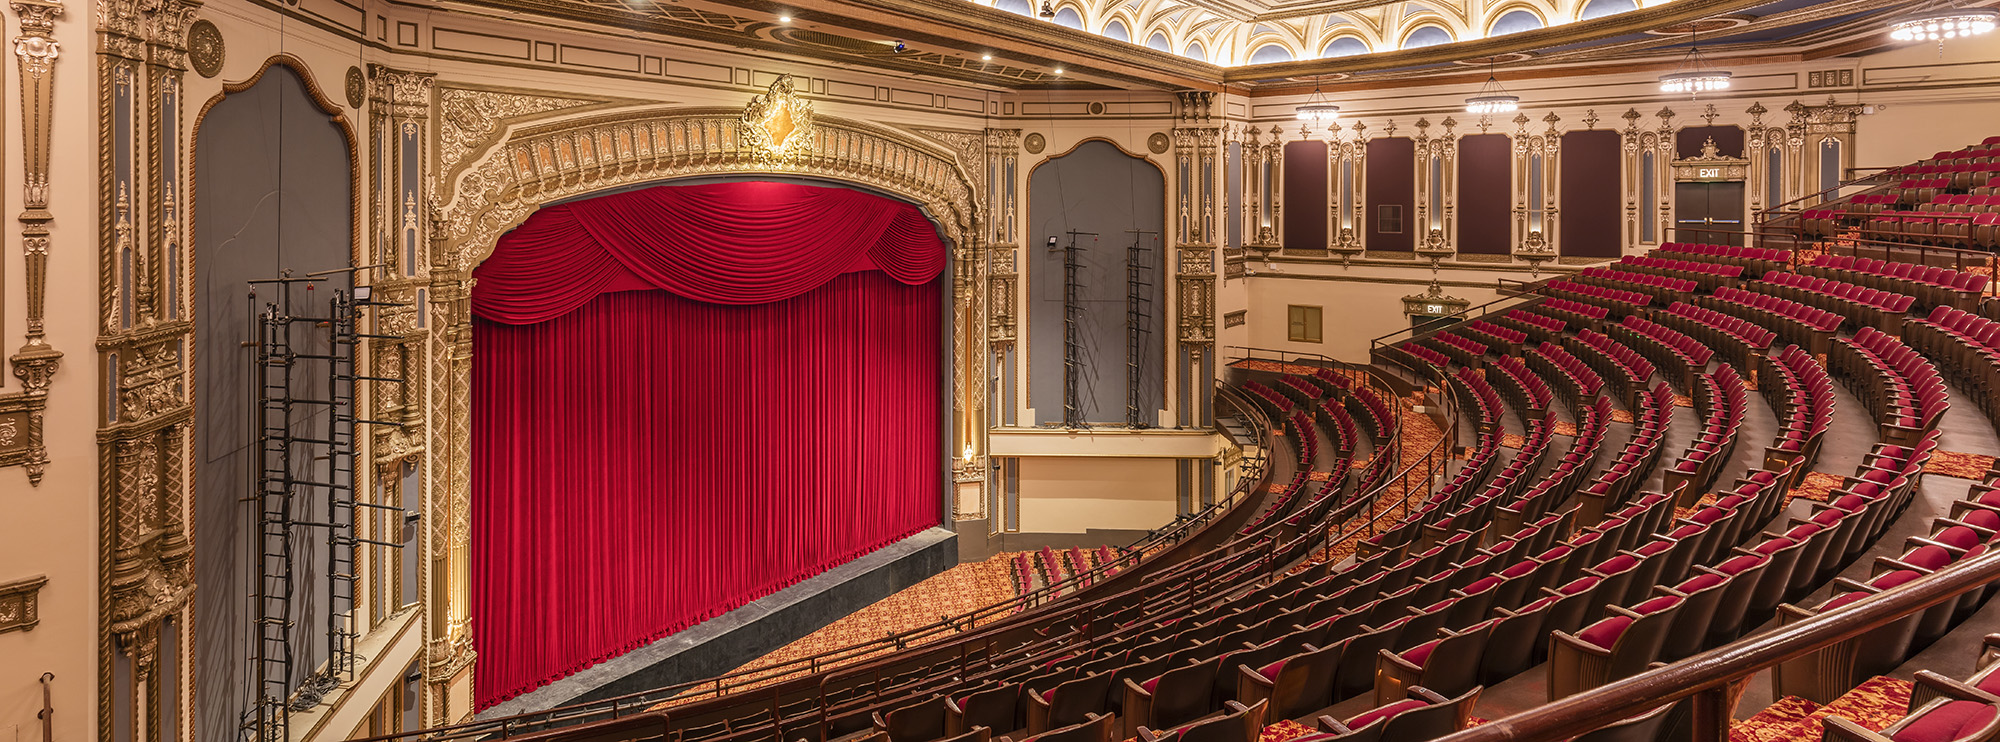 Golden Gate Theatre - Broadway in San Francisco on symphony orchestra seating, petco park seating, van andel arena seating,